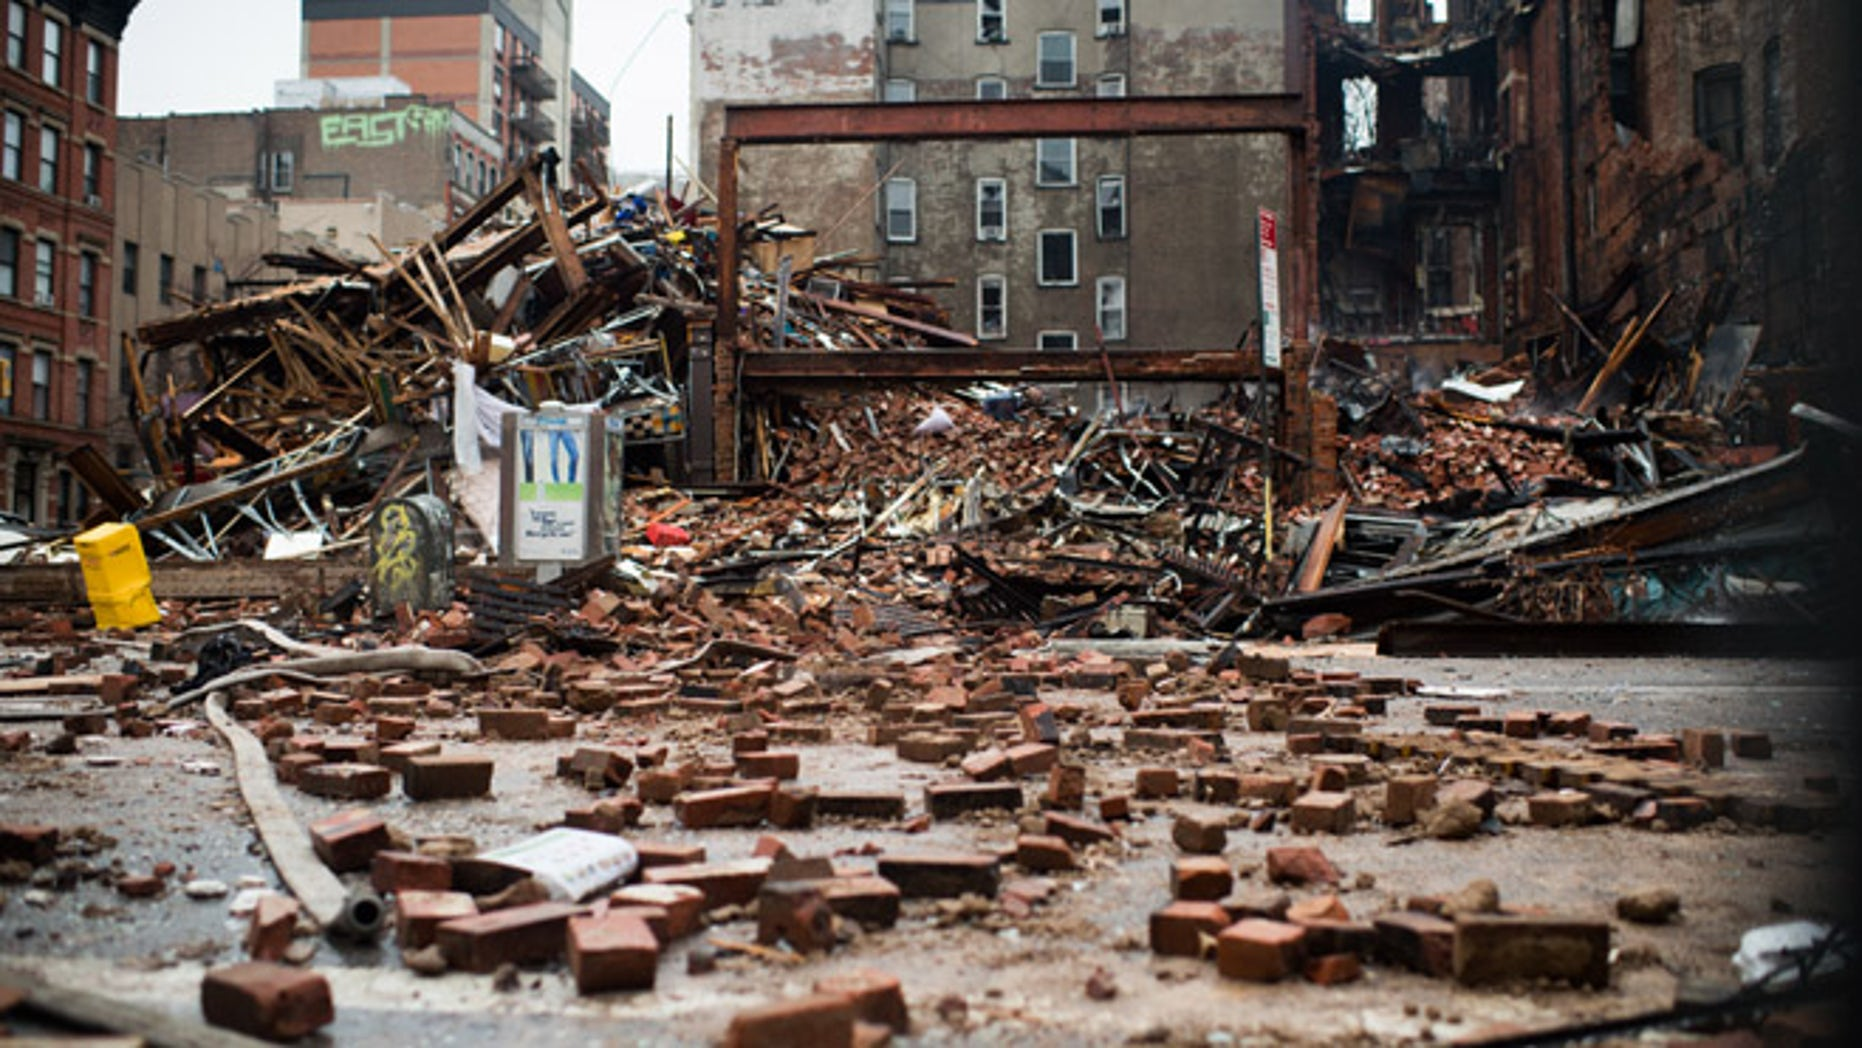 A pile of debris remains at the site of a building explosion in the East Village neighborhood of New York, Friday, March 27, 2015.  Nineteen people were injured, four critically, after the powerful blast and fire sent flames soaring and debris flying Thursday afternoon.  Preliminary evidence suggested that a gas explosion amid plumbing and gas work inside the building was to blame. (AP Photo/The New York Times, Nancy Borowick, Pool)